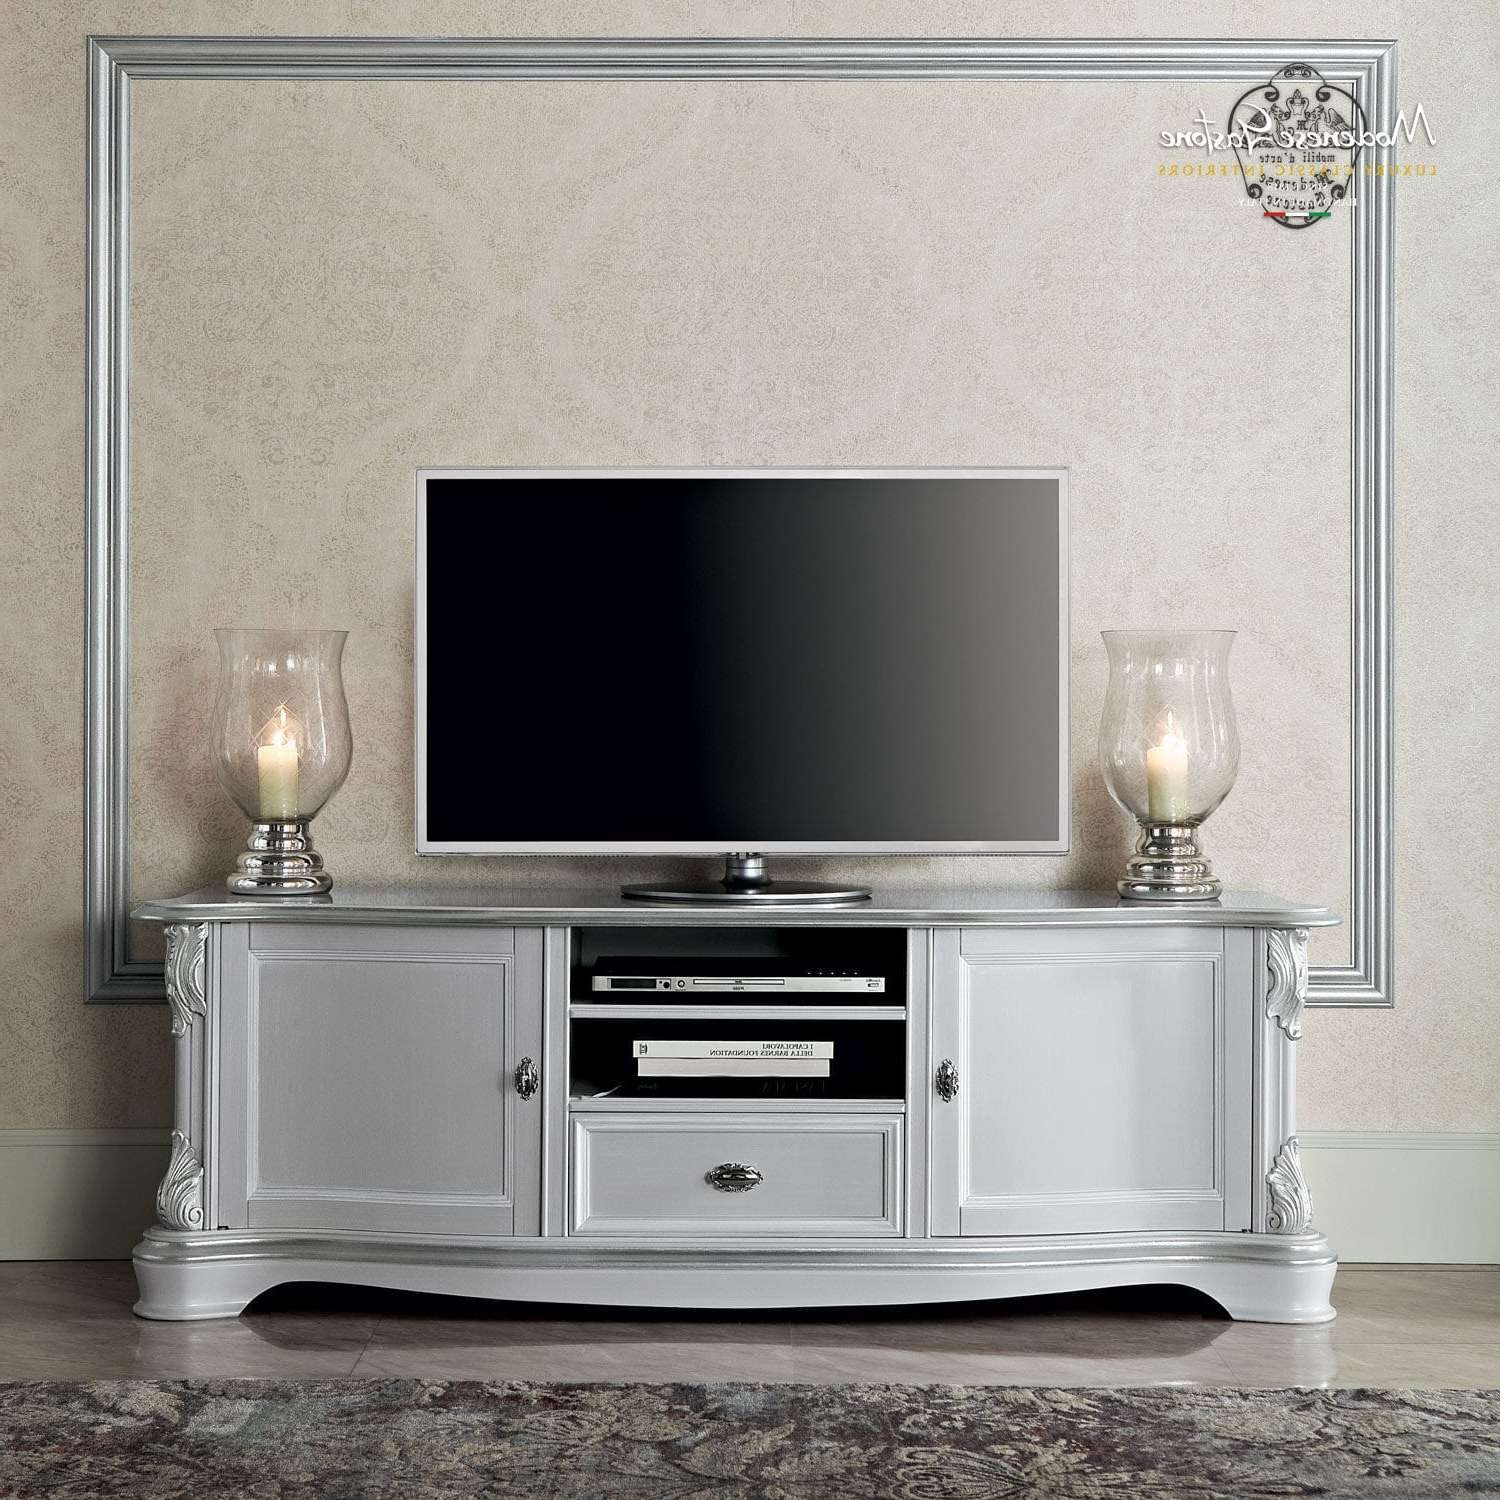 Classic Tv Cabinet / Solid Wood – Bella Vita – Modenese Gastone With Regard To Luxury Tv Stands (View 11 of 15)